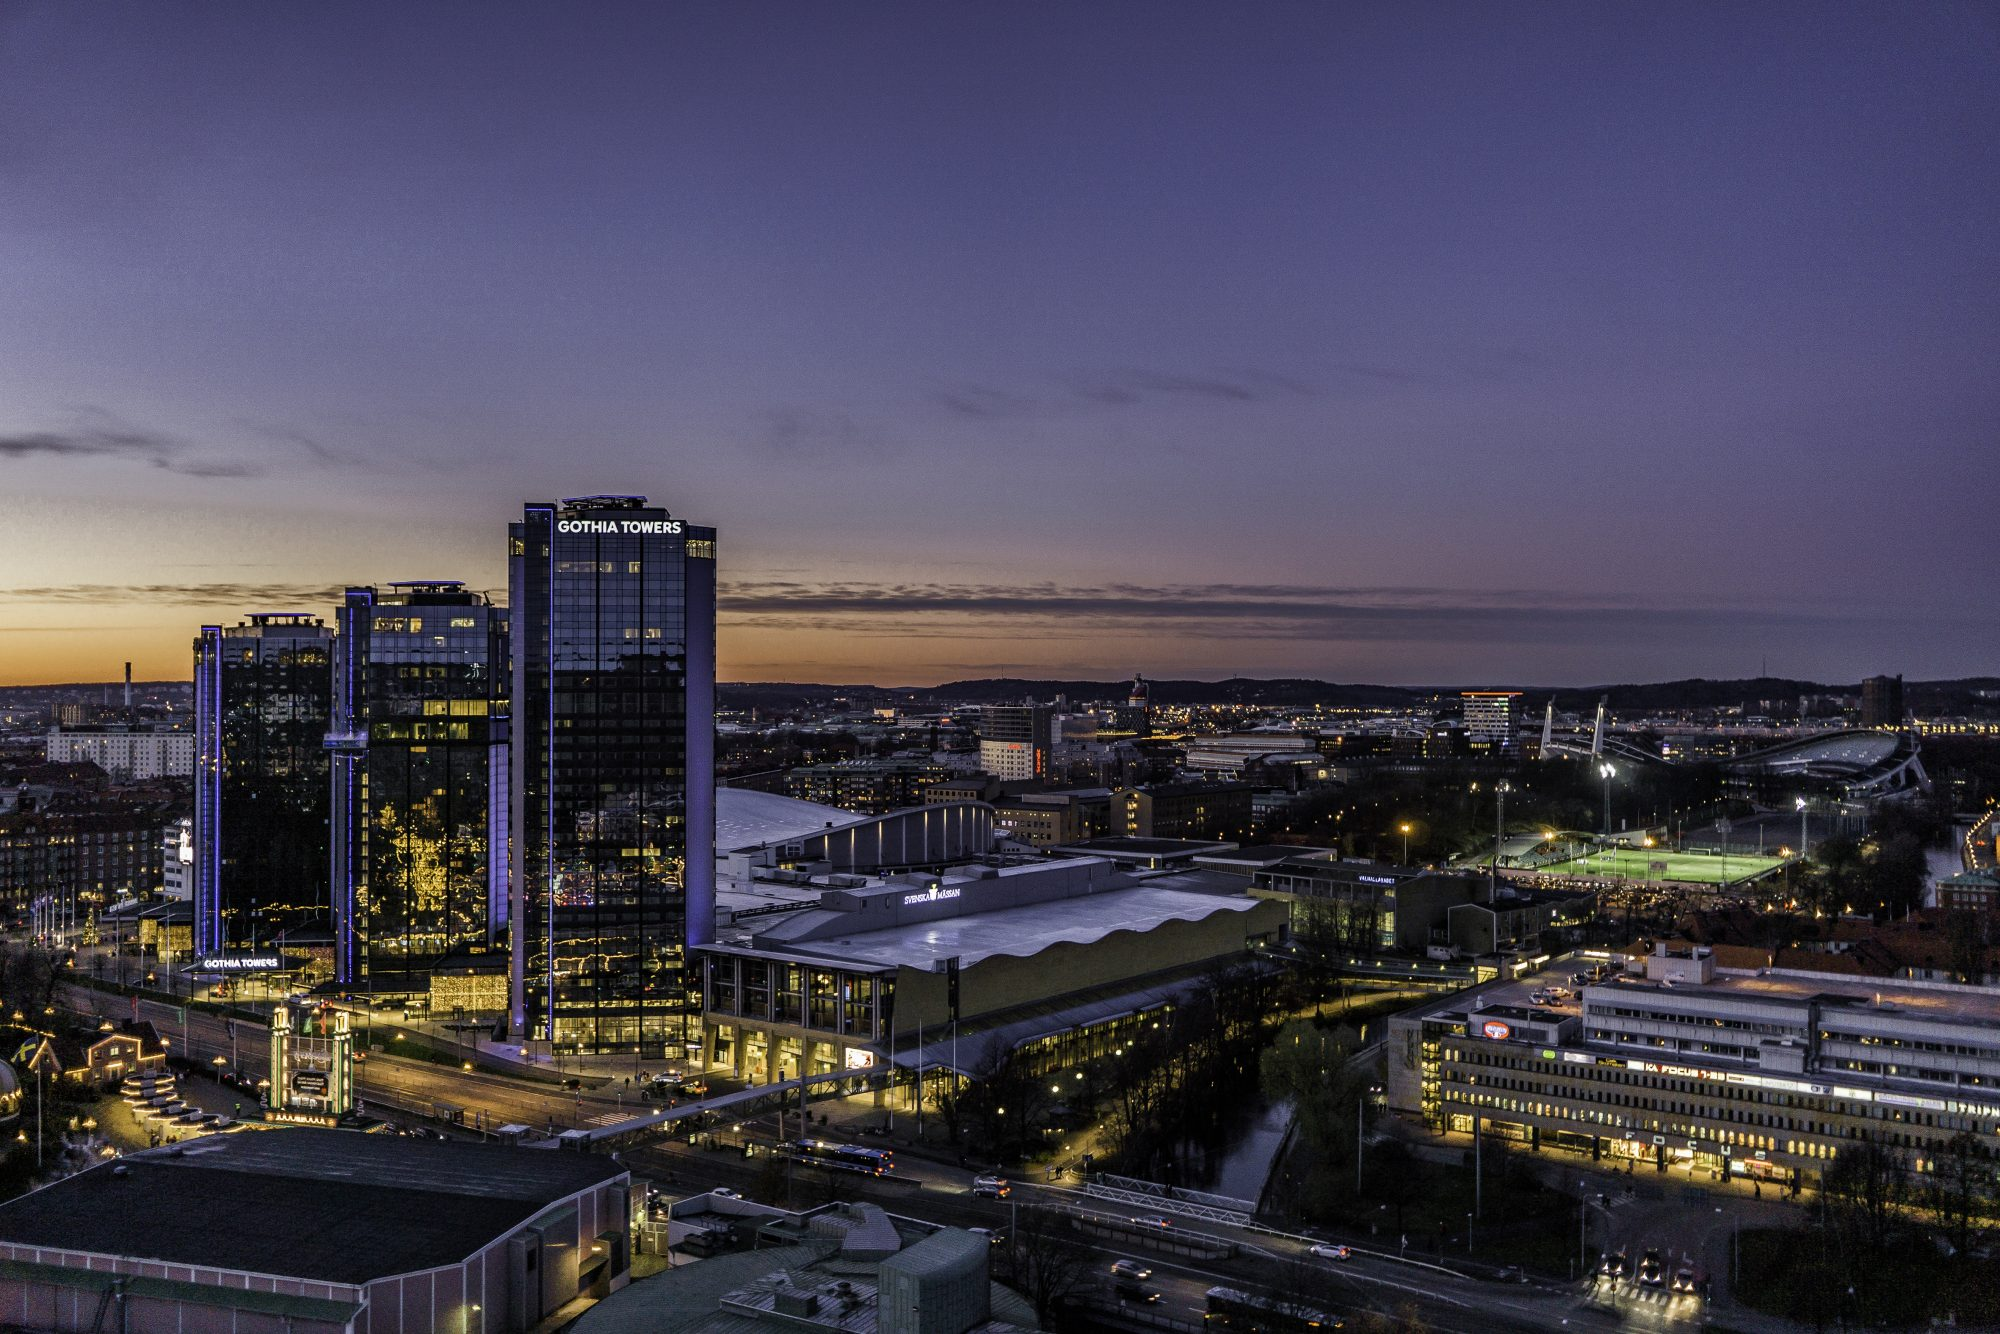 Gothia towers, Gothenburg from above by night